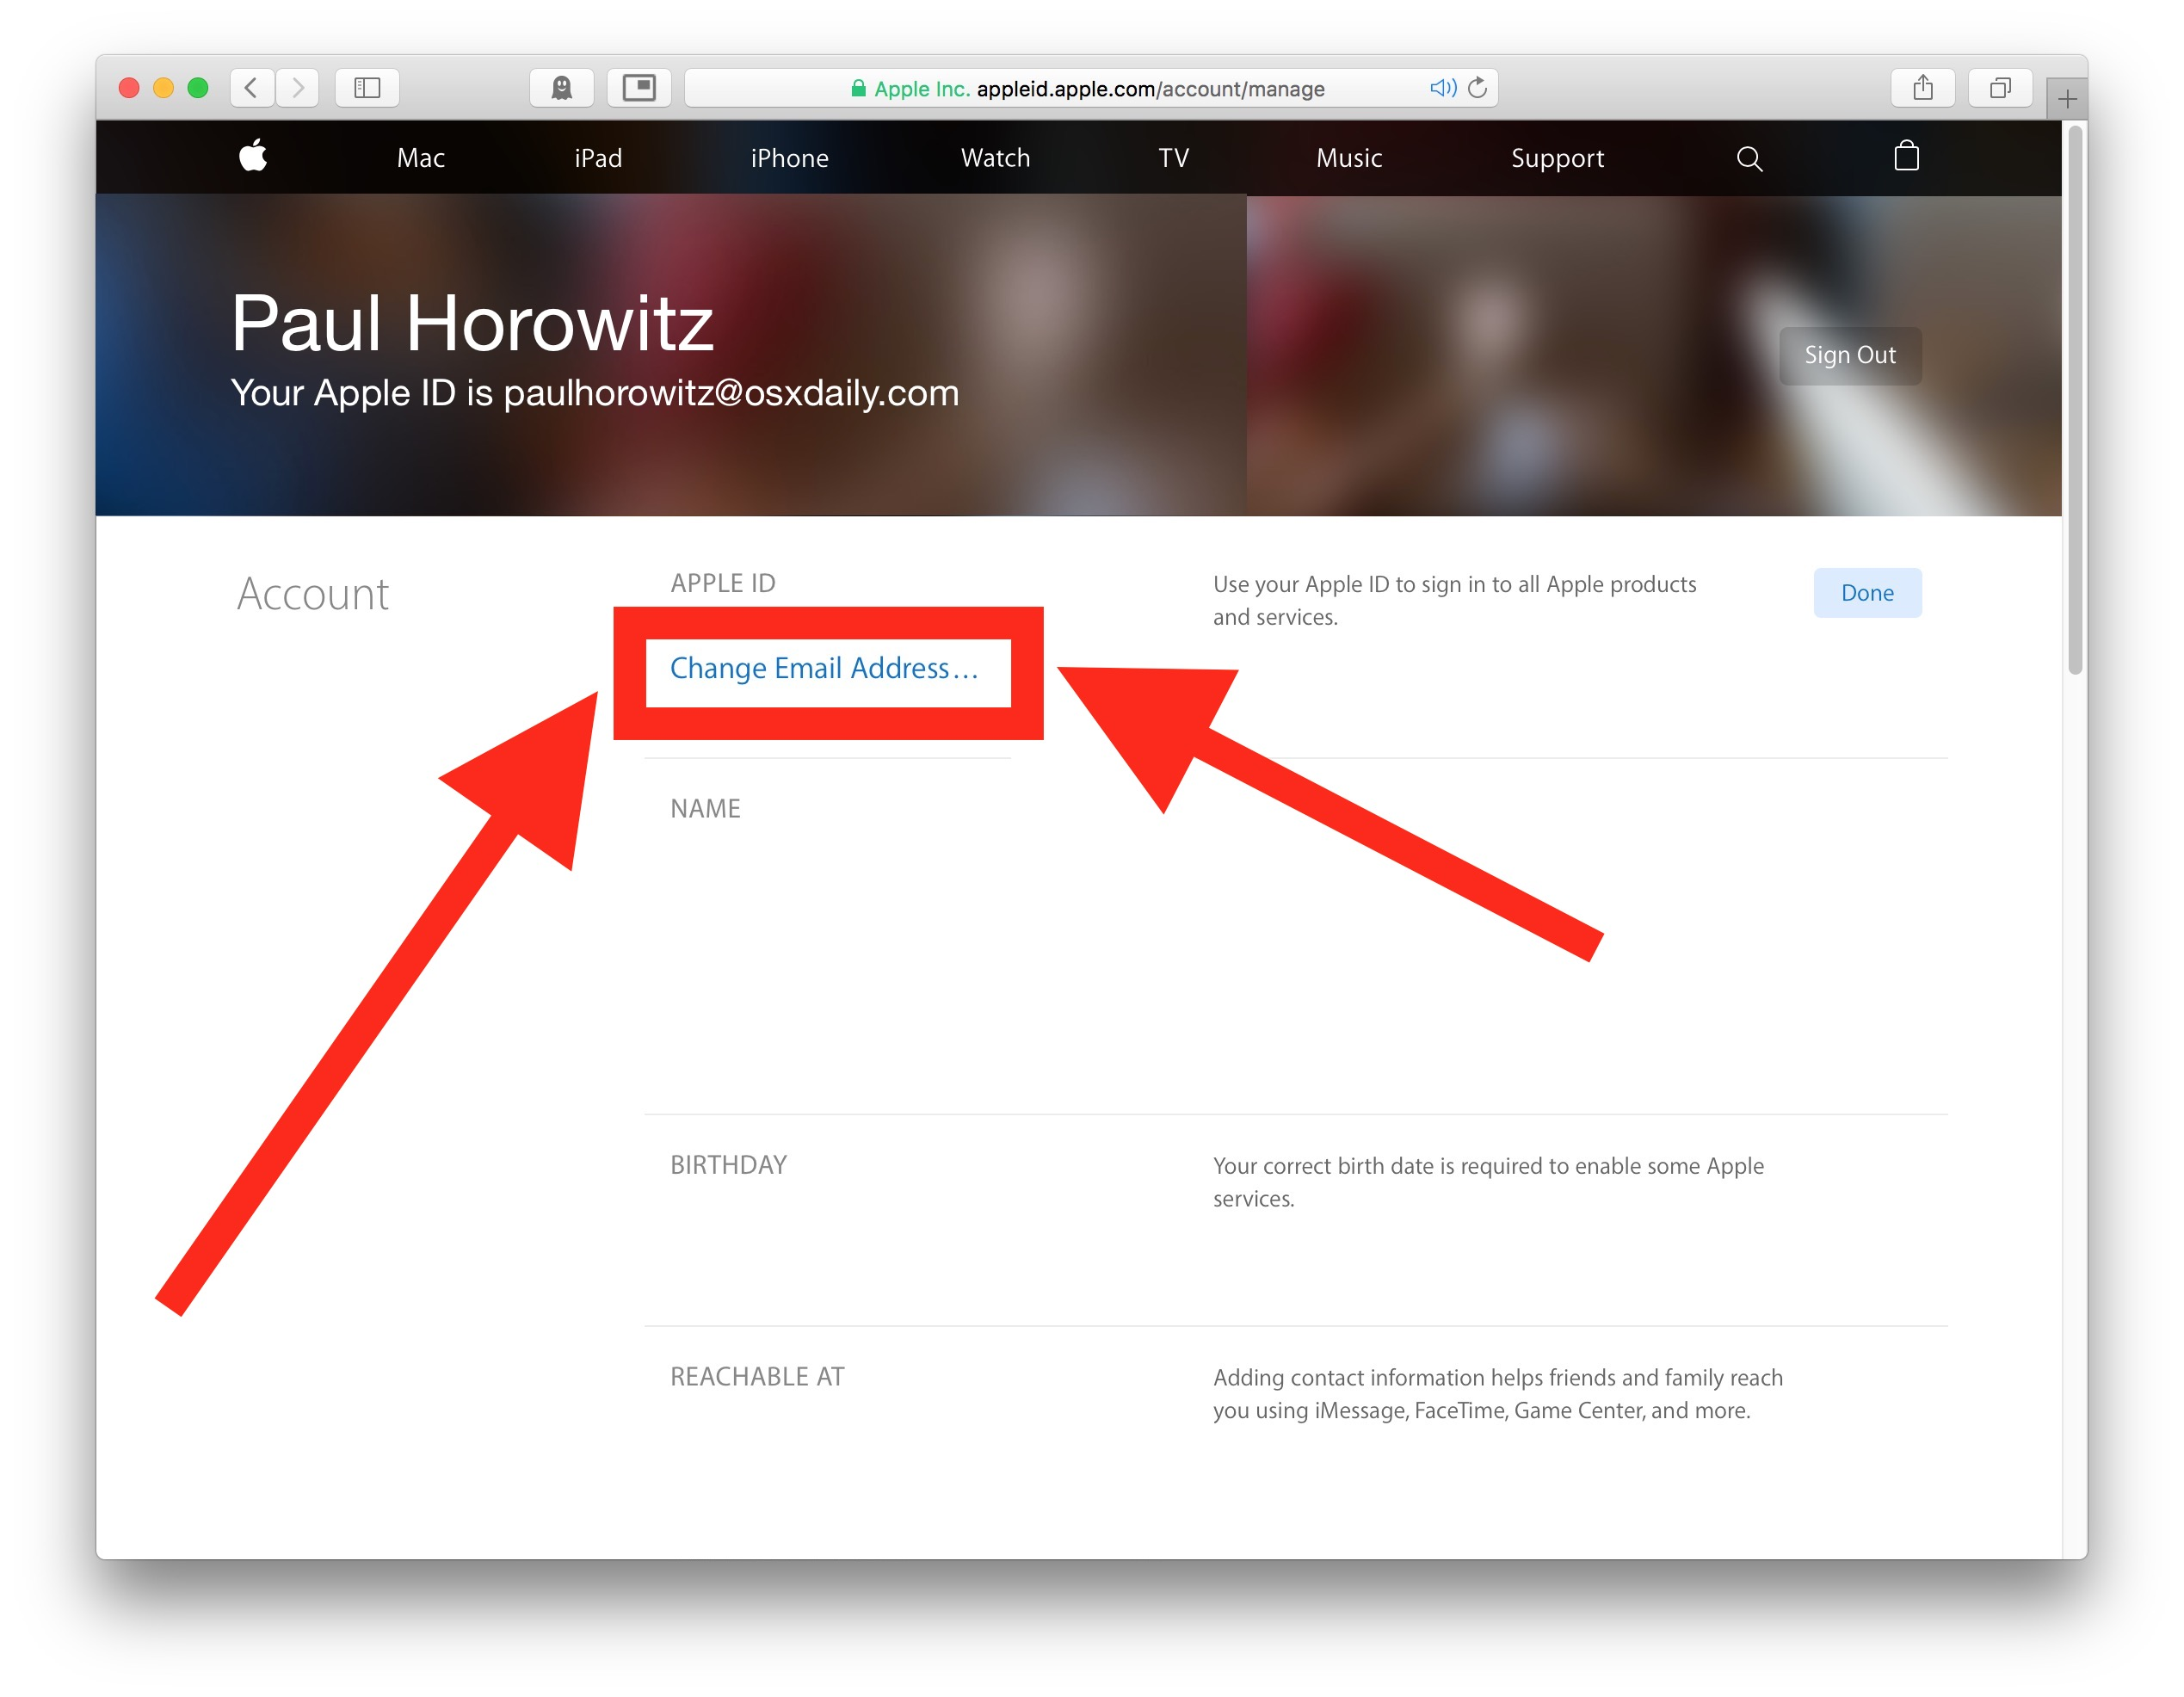 How to change email address linked to Apple ID